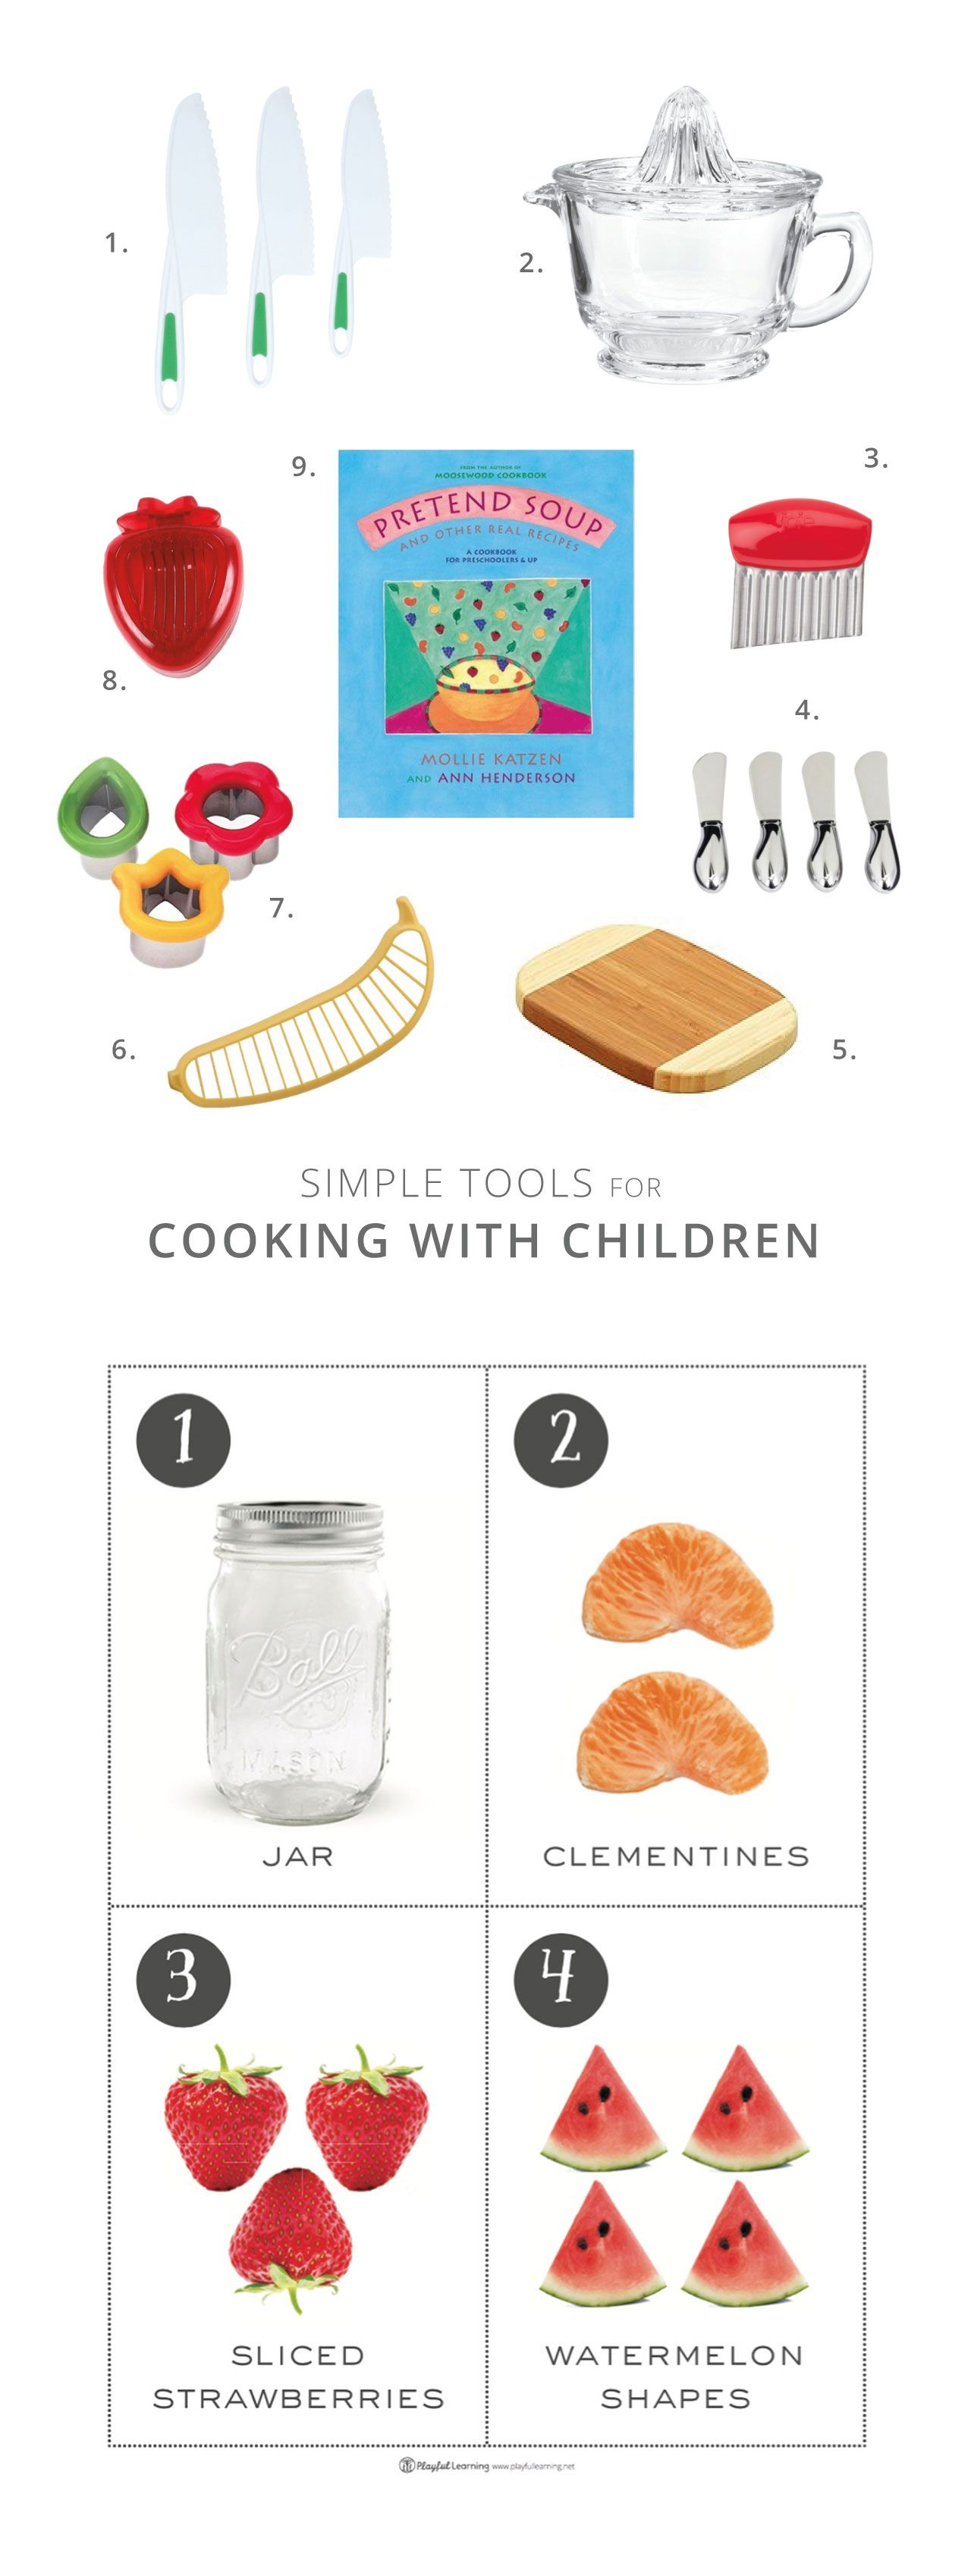 Simple Tools For Cooking With Children